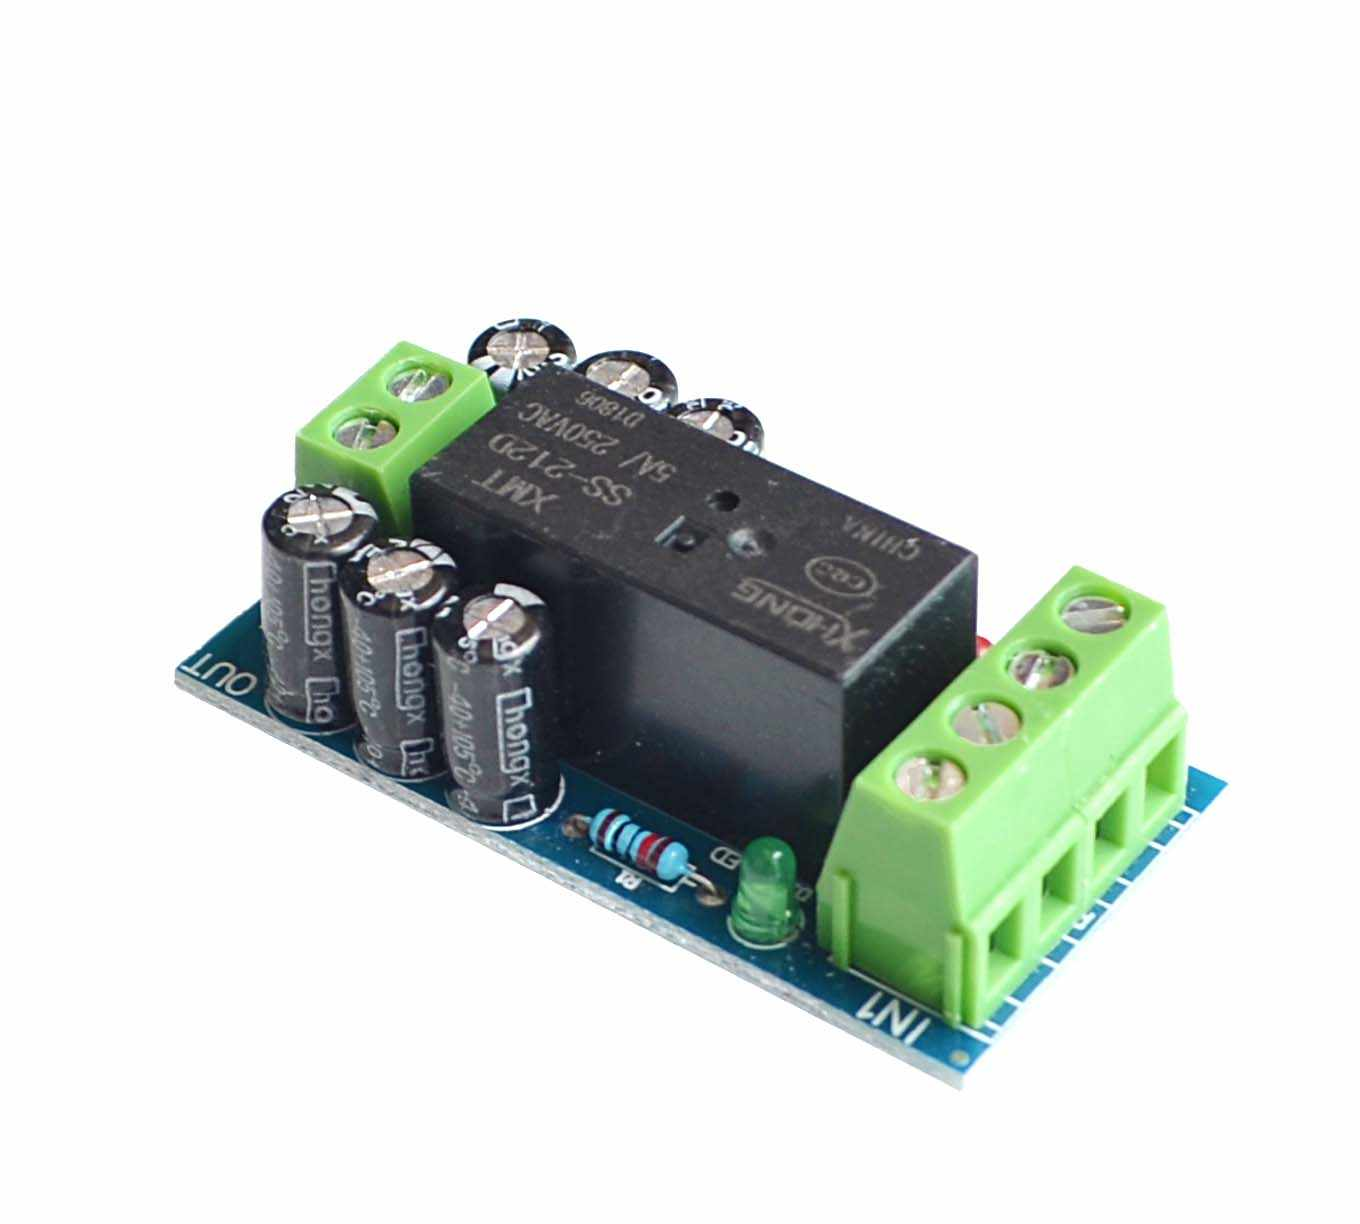 12V 150W 12A Backup Batterie Schalt Modul high power Board Automatische schalt batterie power XH-M350